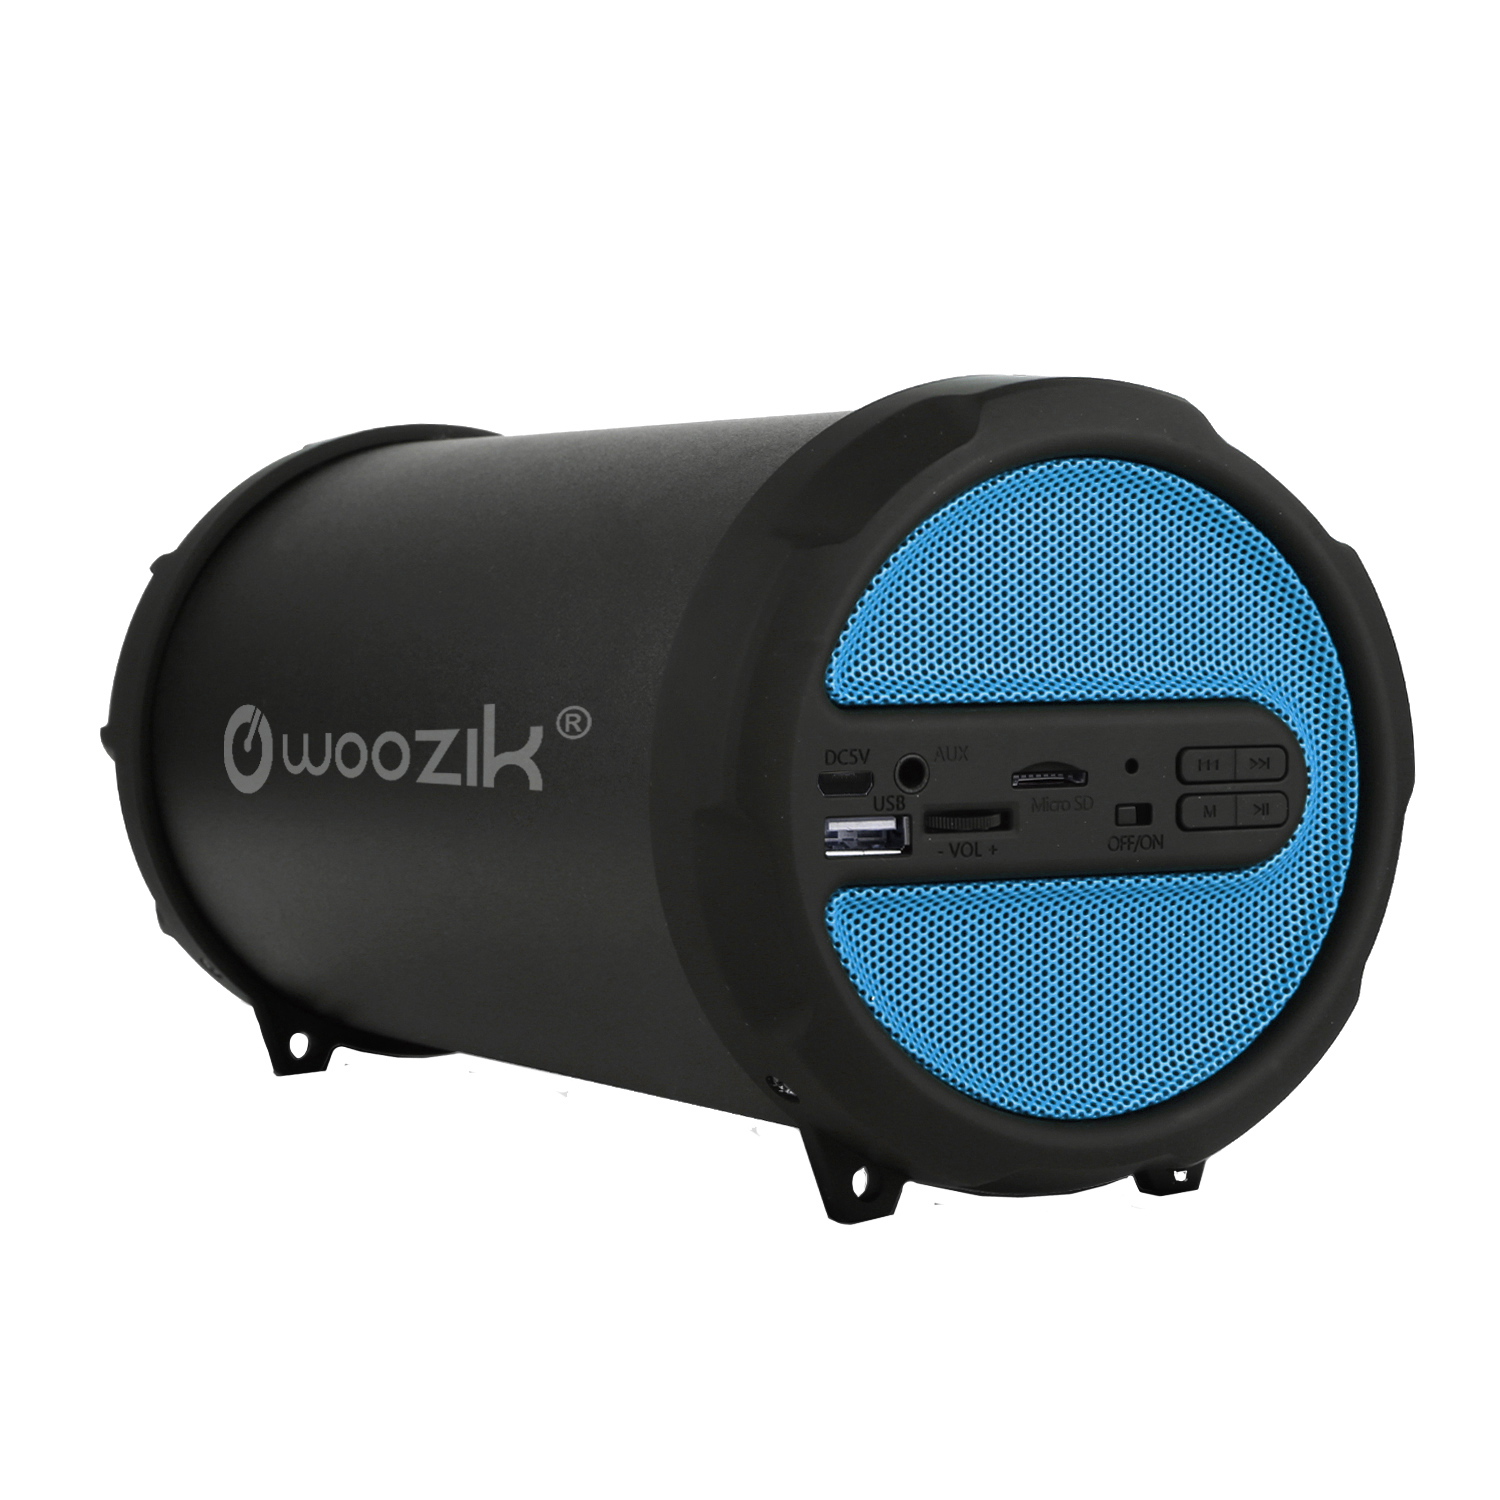 Woozik S213 Portable Loud Party Indoor Outdoor Bluetooth Speaker with  Dancing LED Lights, Micro SD Card, USB, AUX, FM Radio, Rechargeable Battery, Strap (LED-Black)